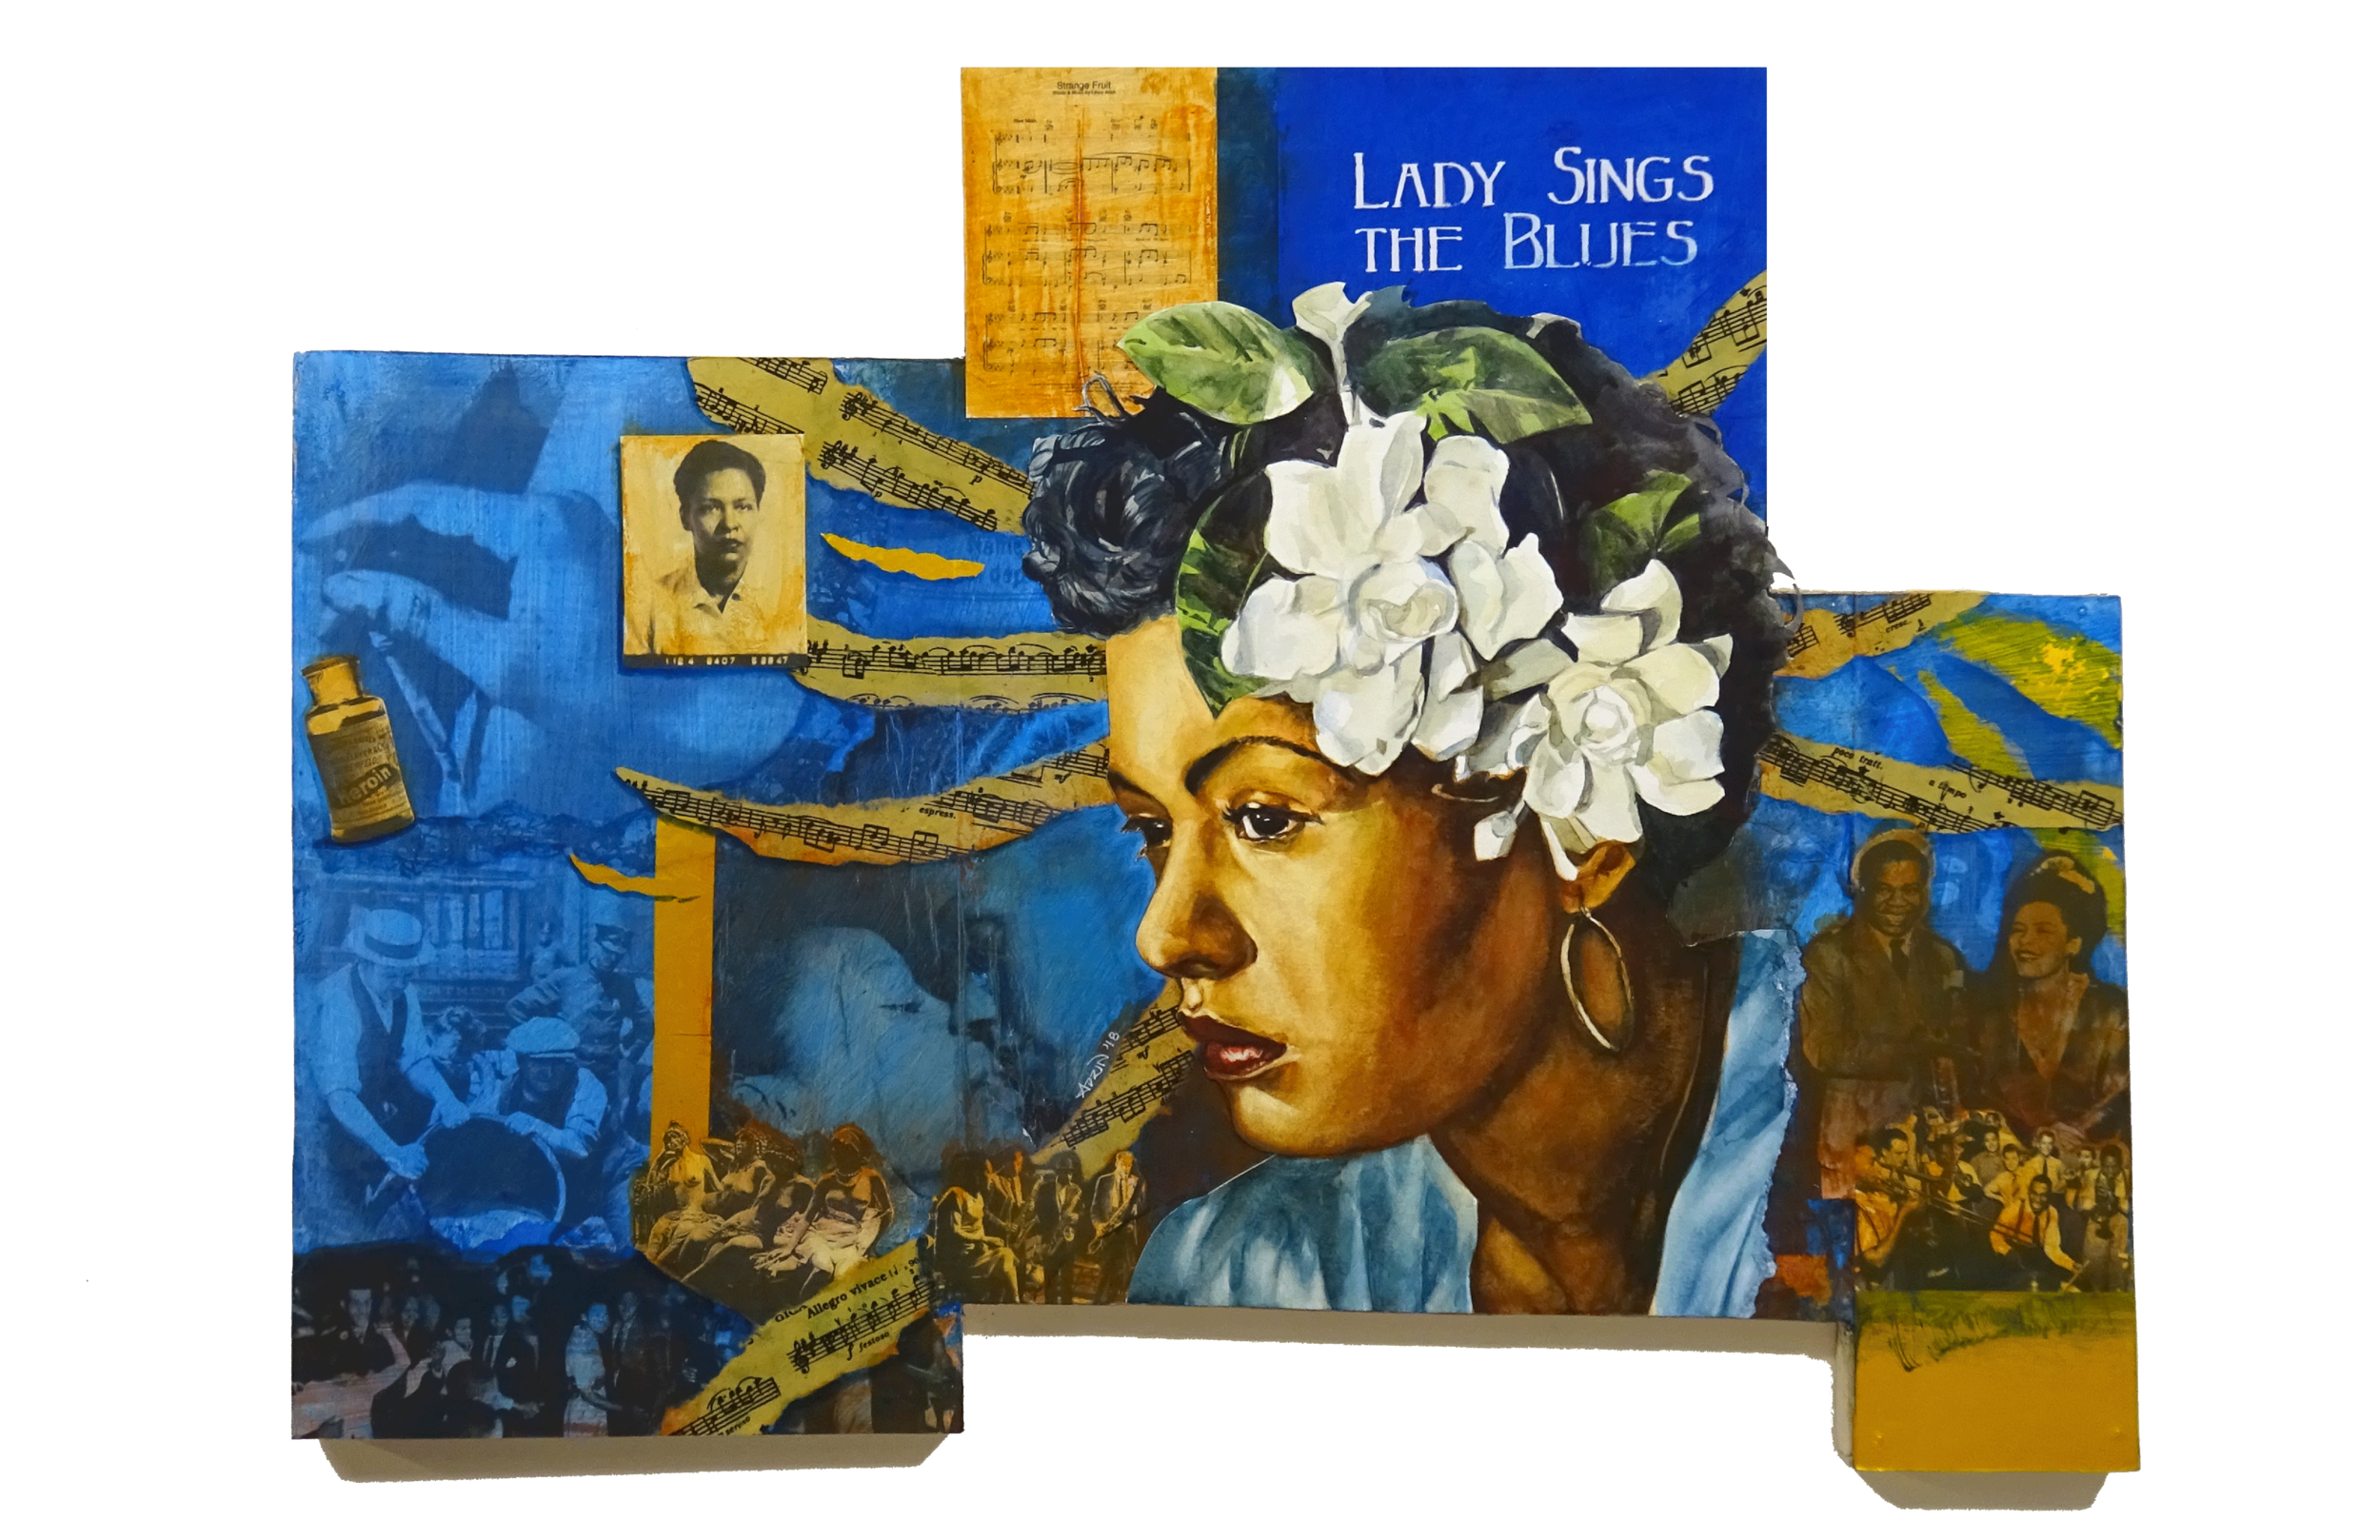 Billie Holiday - mixed media piece by Adrienne Norris.